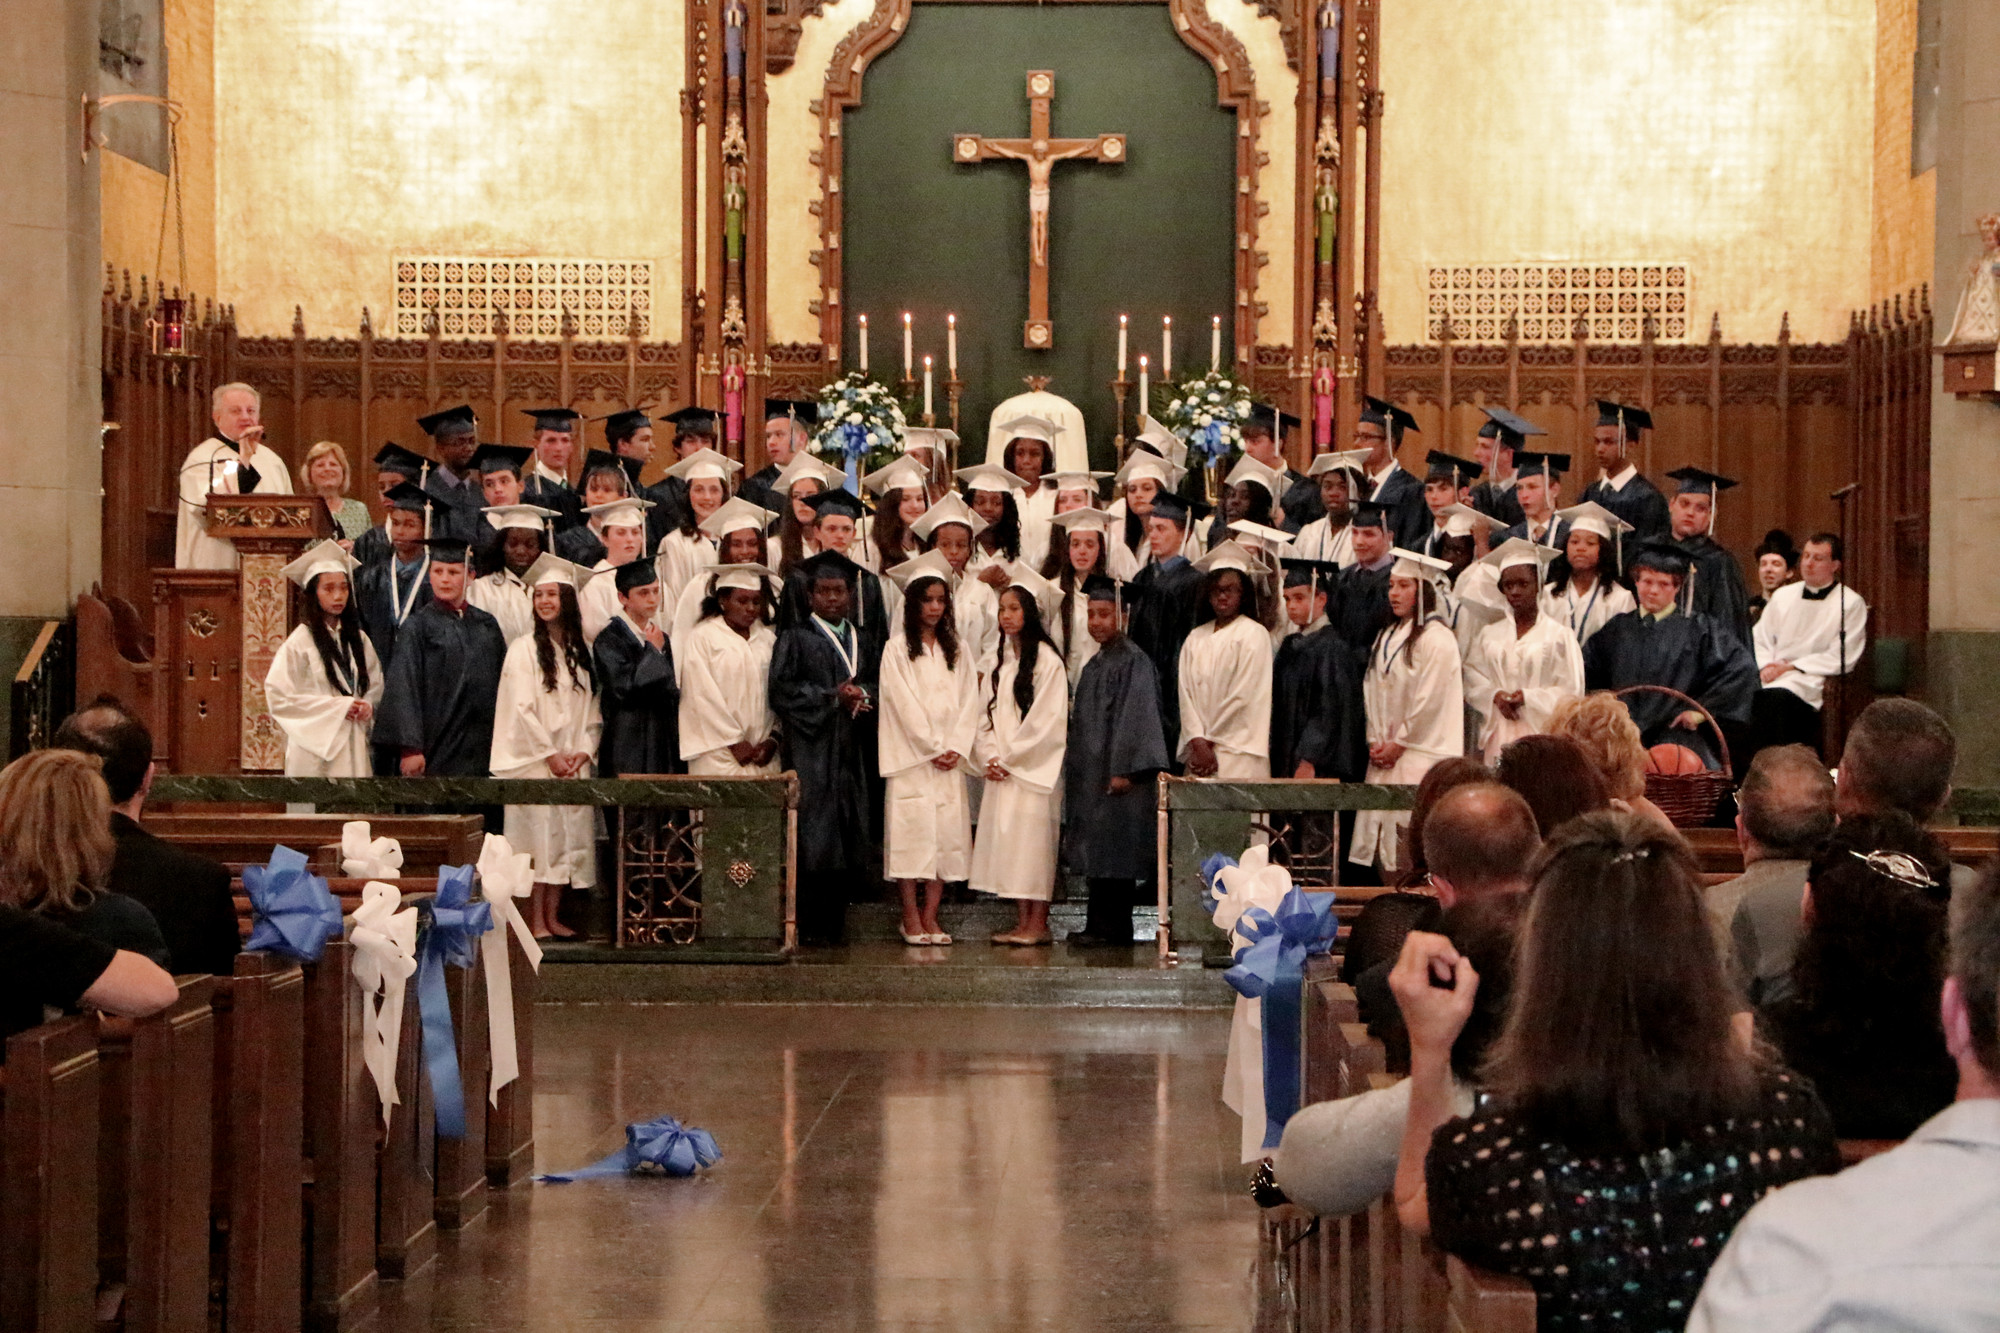 Graduates closed the cermoniy with a rendition of their school song.